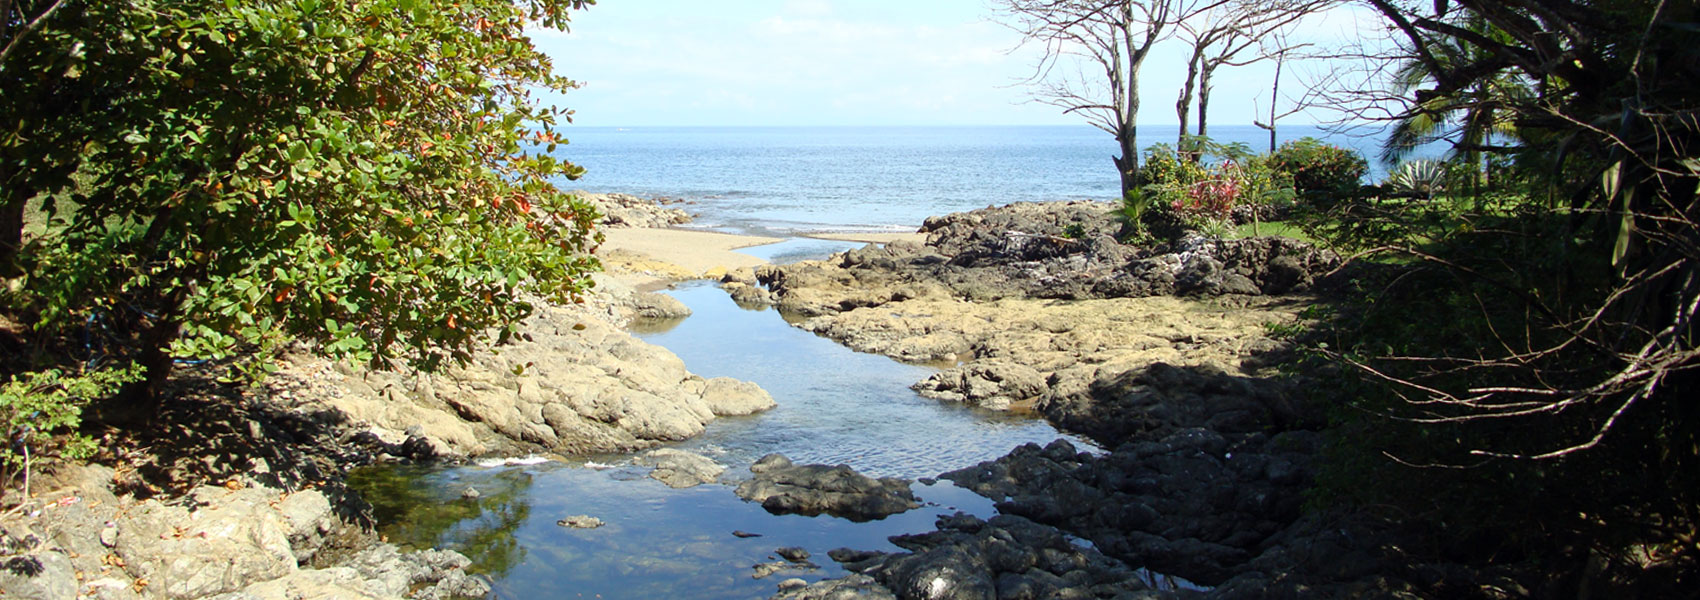 Montezuma is one of Costa Rica's most popular ecotourism destinations.